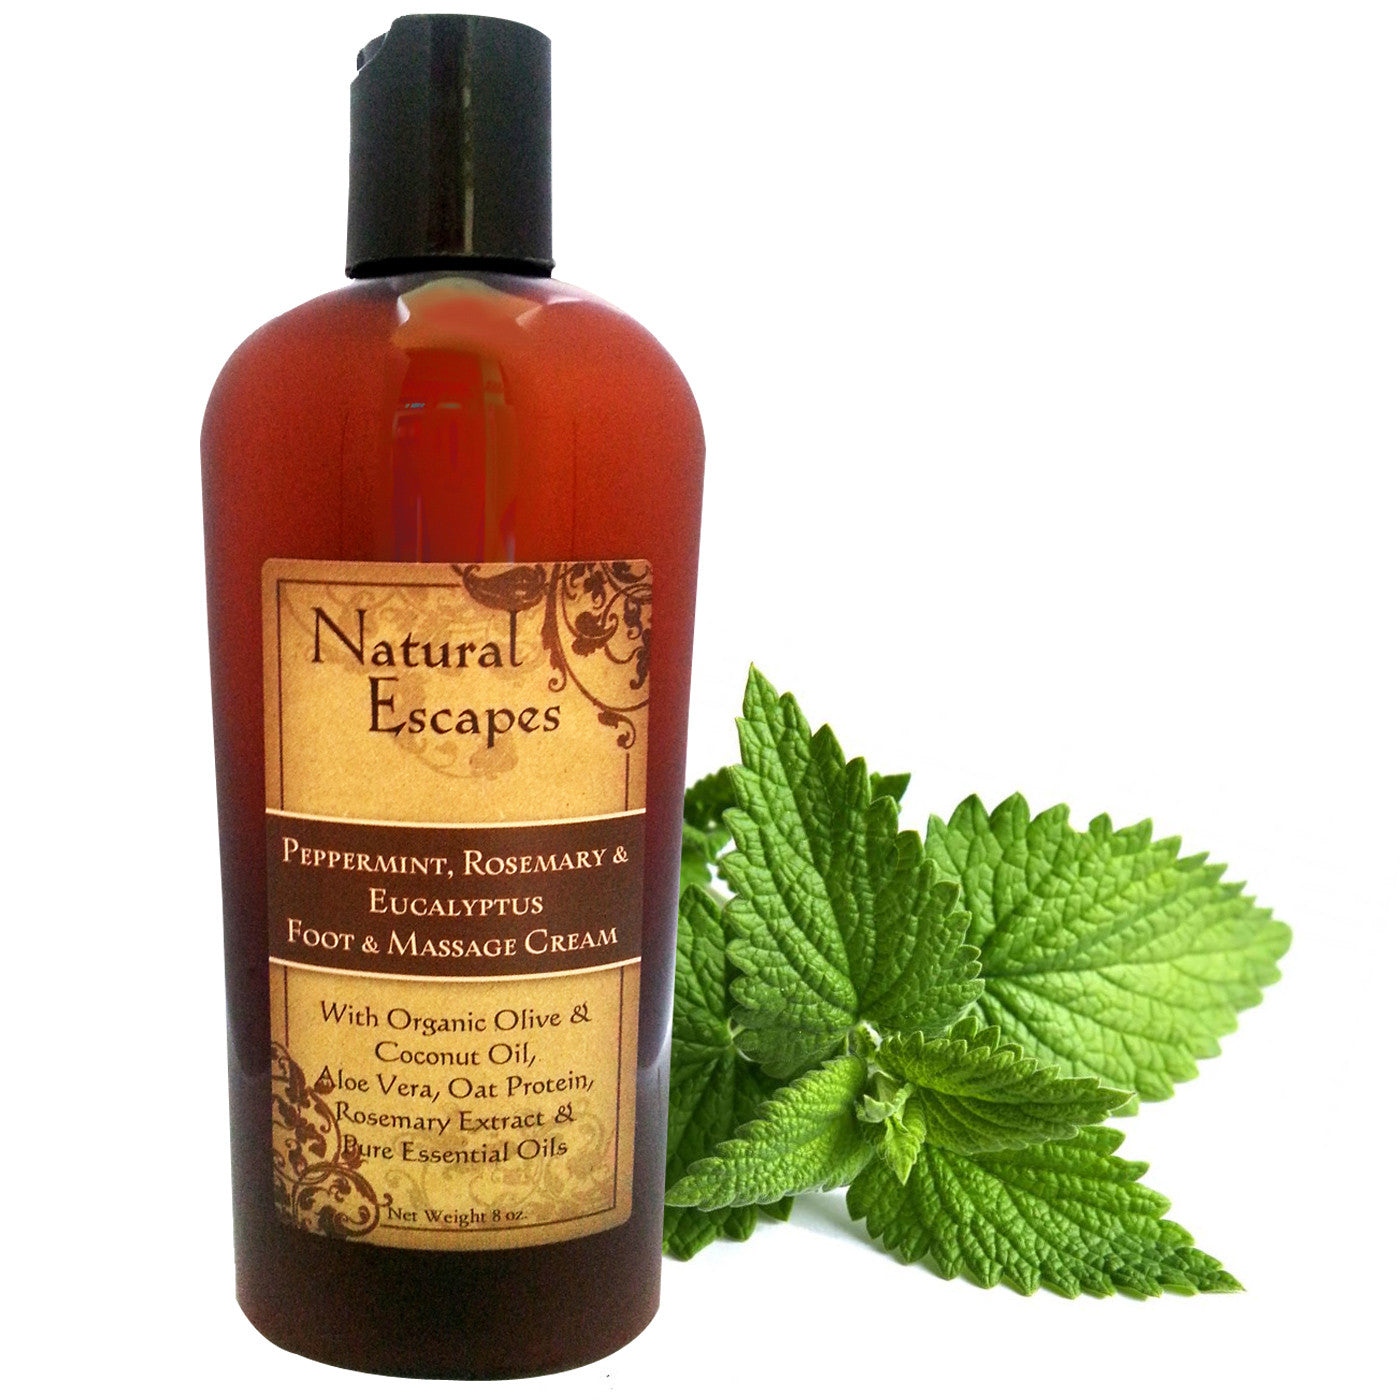 Peppermint, Rosemary & Eucalyptus Foot & Massage Cream for Ddy, cracked feet.  Therapeutic Massage Lotion